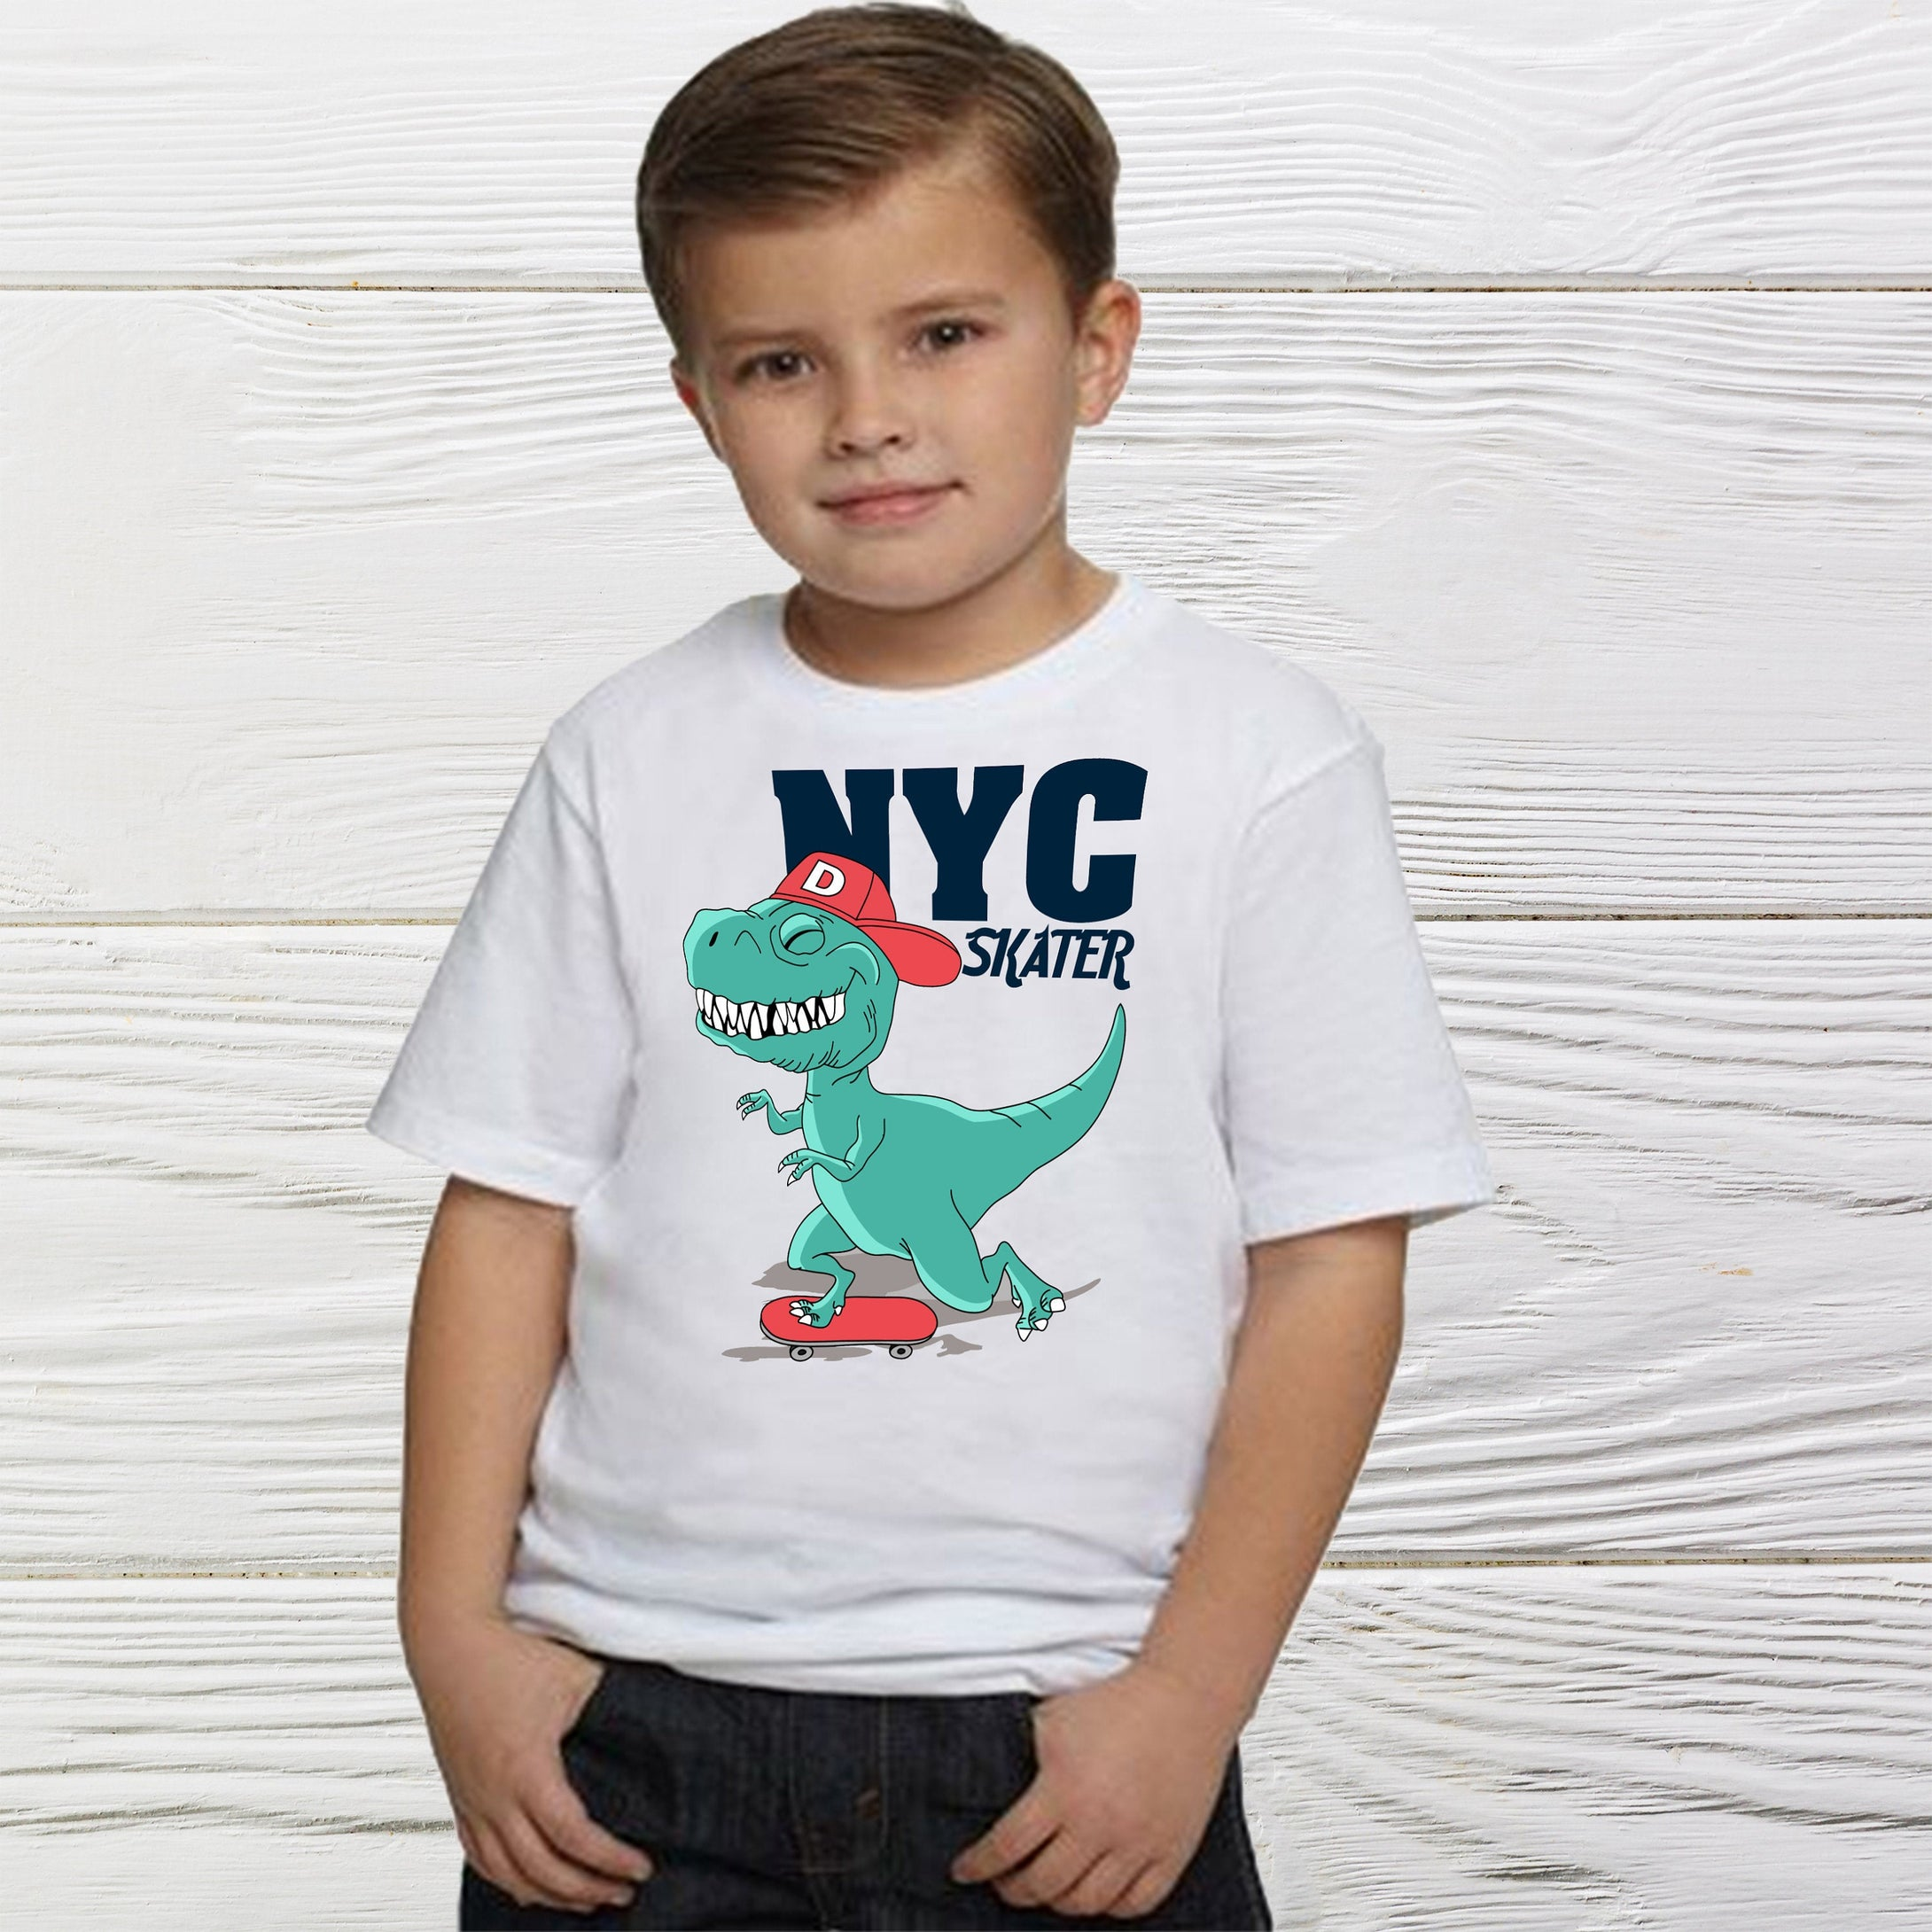 NYC Dinosaurs Squad Skater Boys Shirts  - birthday shirt -  boys  shirt -  Dinosaurs shirt - Little boys NYC Dino shirts  - Boys shirts